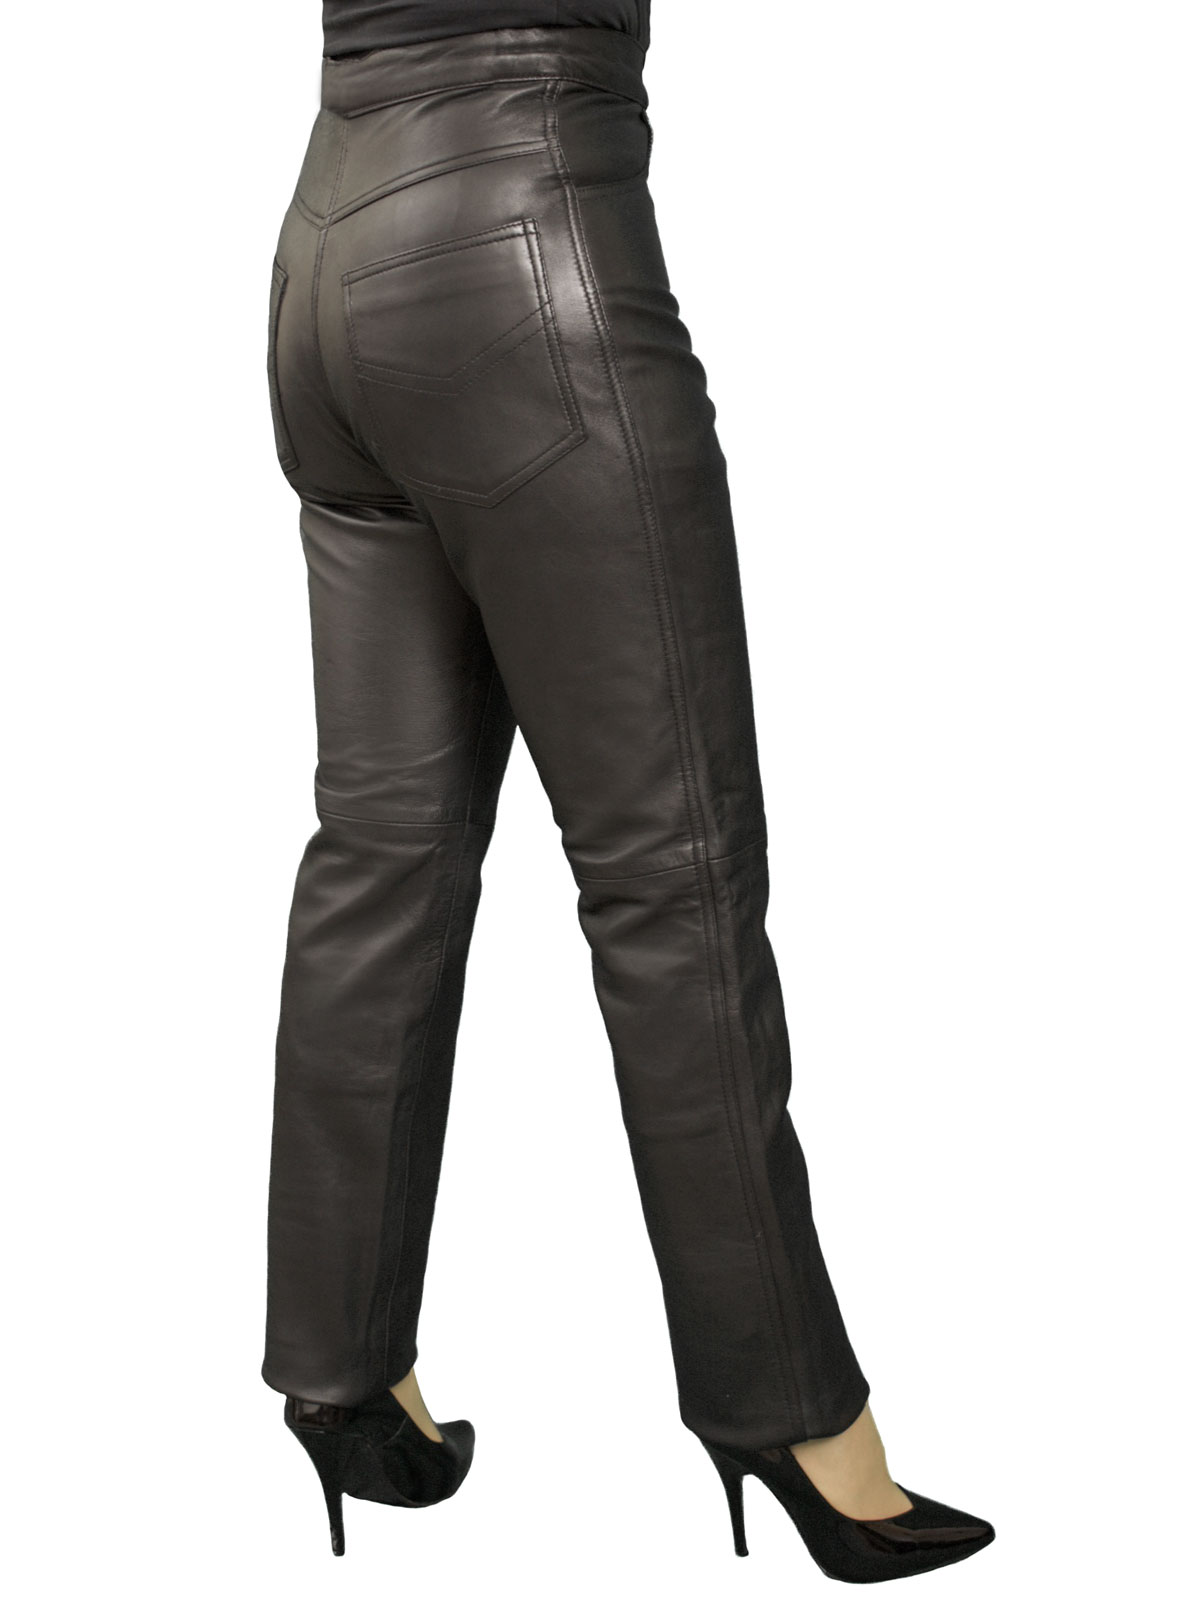 Custom made designer Leather Jeans. Categories. Jackets Leather Jackets Leather Jackets Leather Long Coats Kids. Pants Women Leather Samples Accessories Gift Certificate Other Charges Special Offer. My.